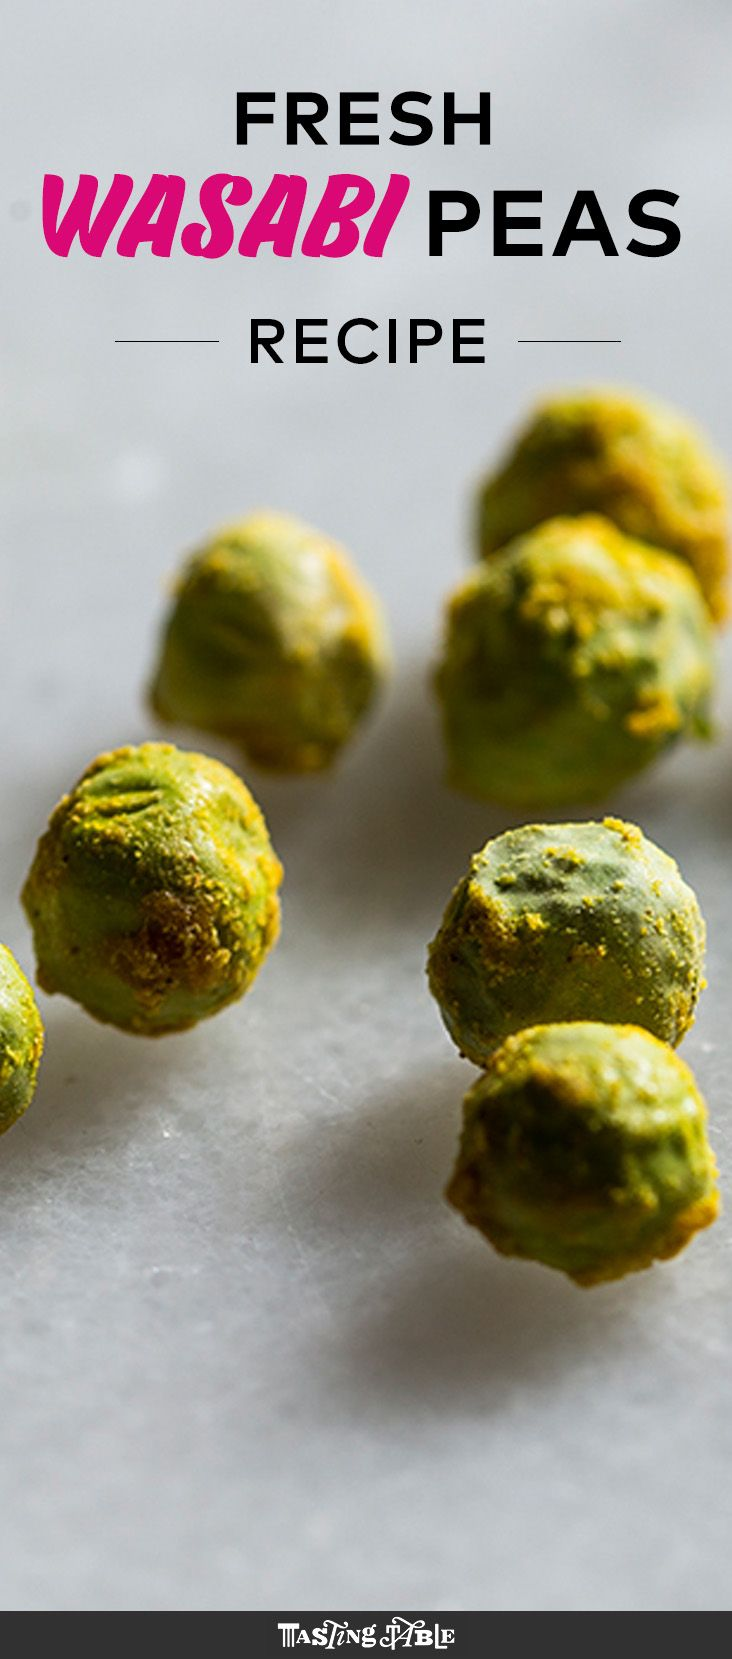 You haven't had wasabi peas until you've had them with fresh wasabi. Get the recipe on Tasting Table.